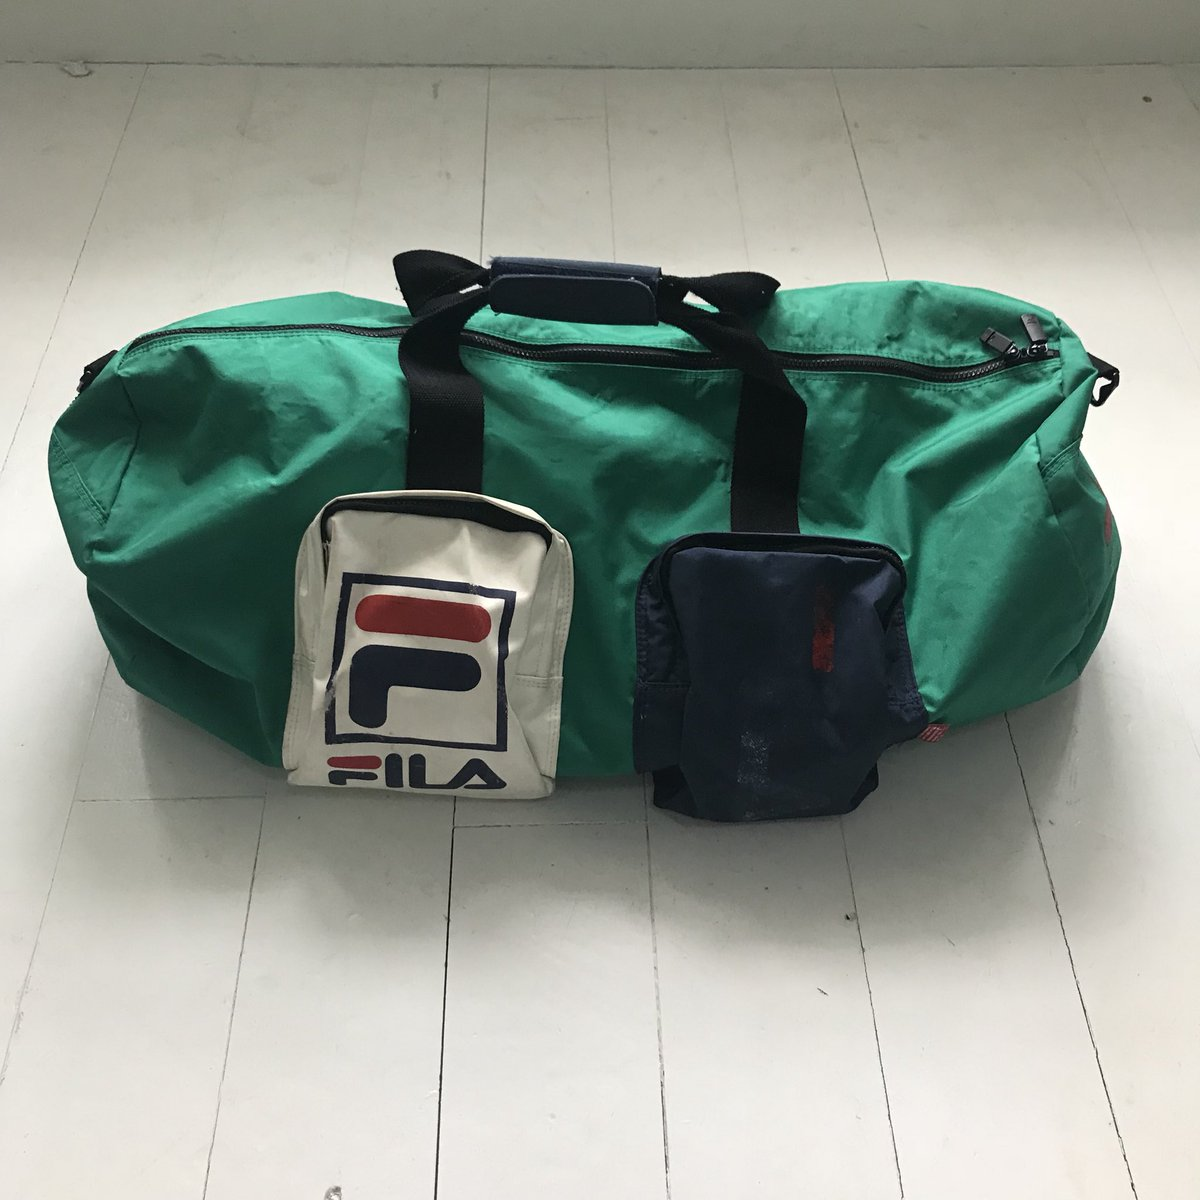 47665de3002f fila bags price Sale